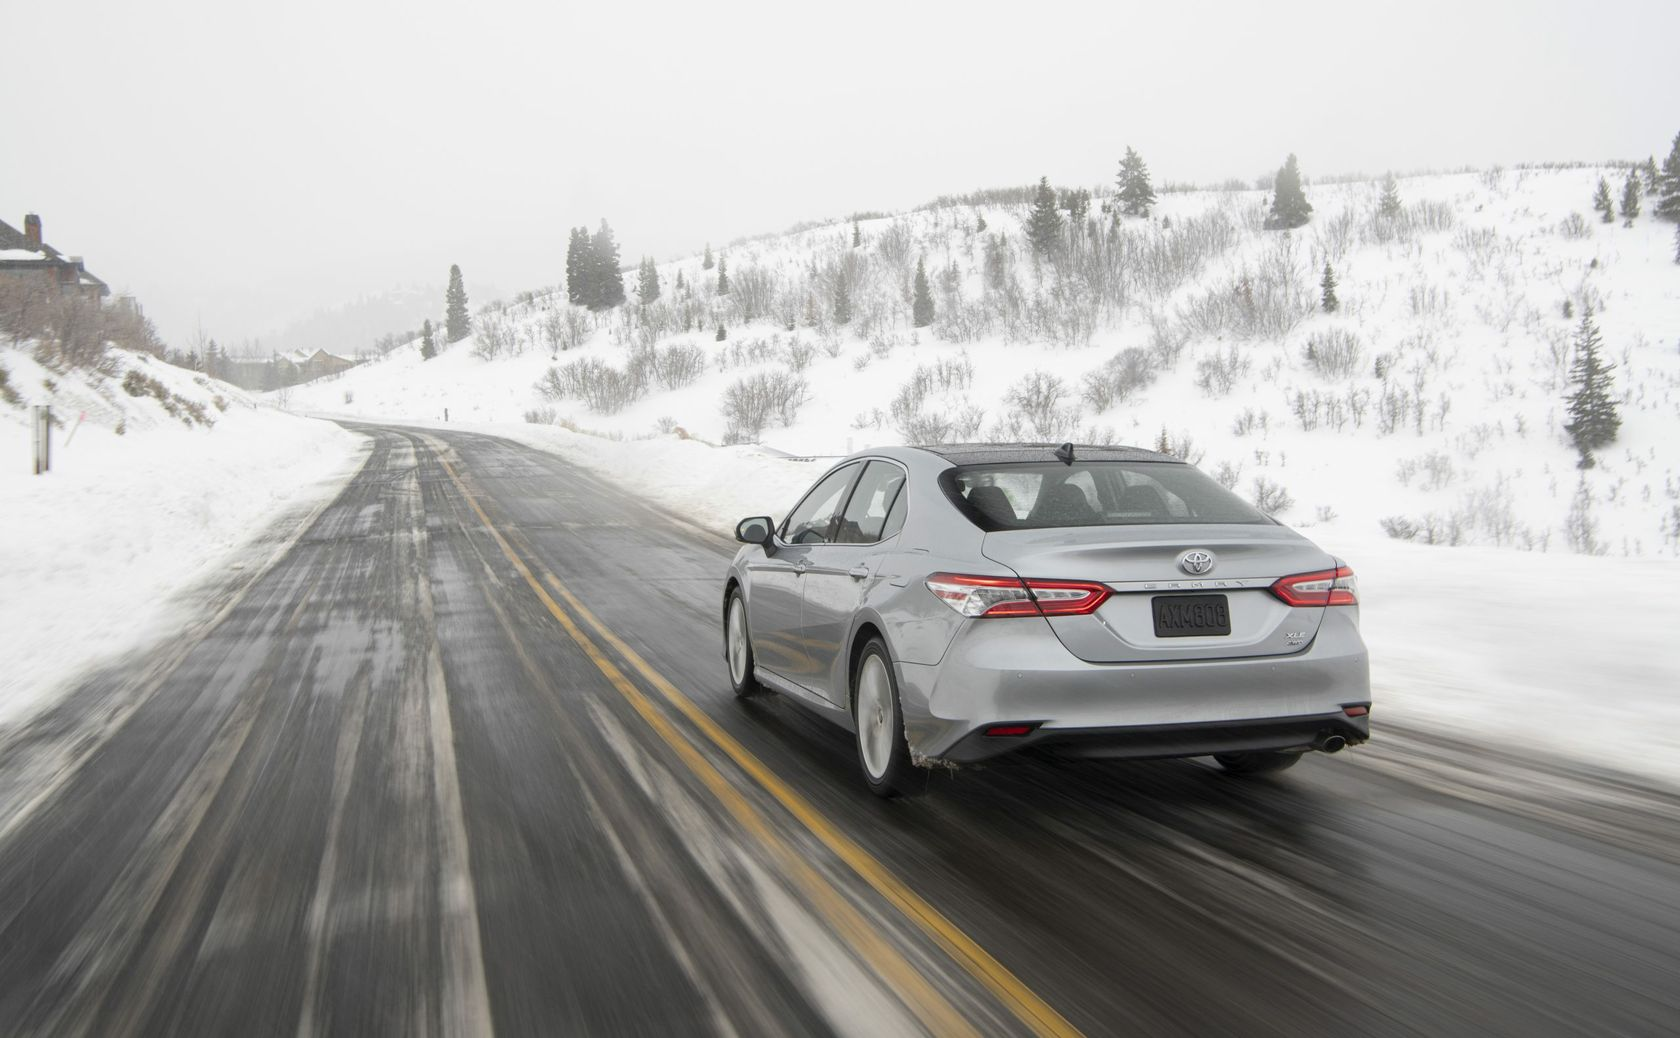 2020_Camry_XLE_AWD_Celestite-Silver_021-scaled